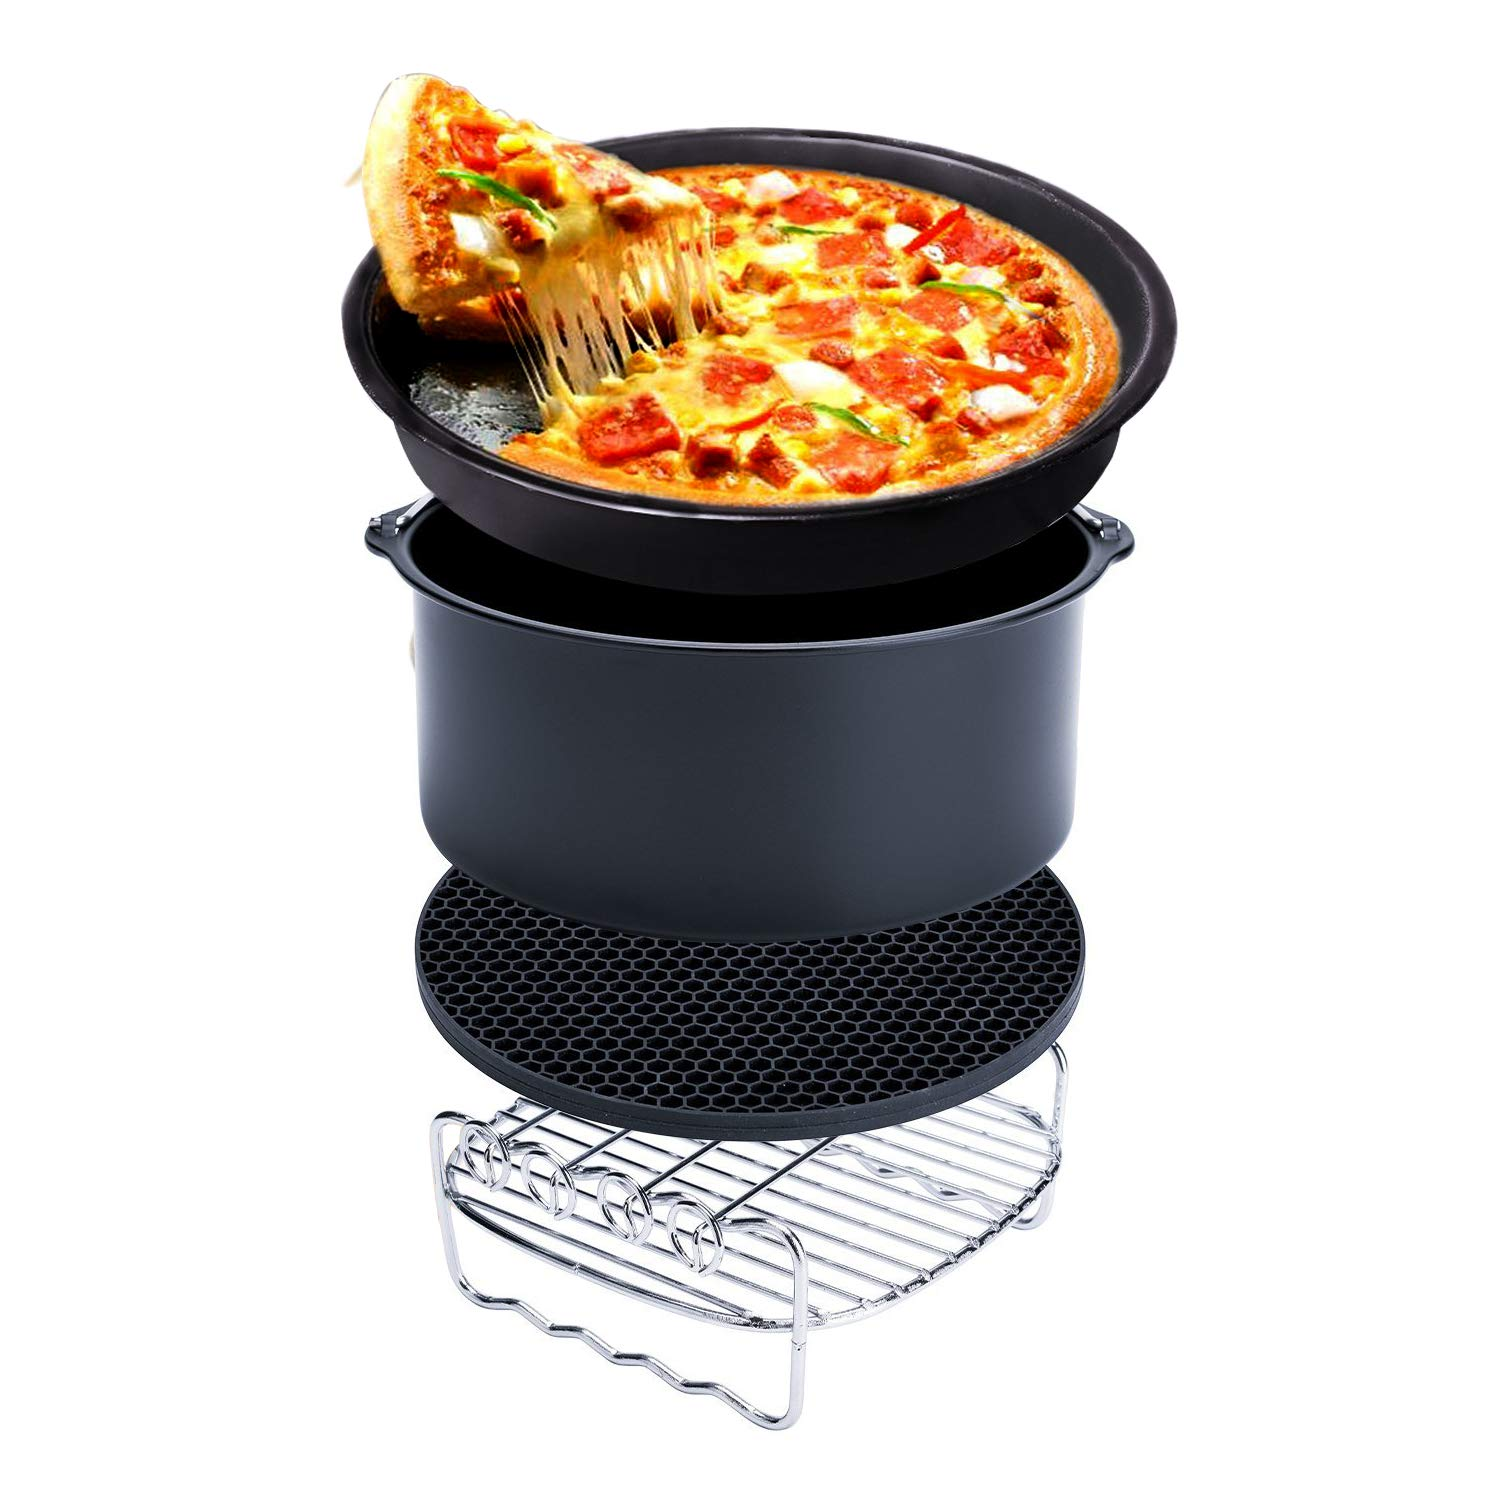 Air Fryer Accessories for Gowise Phillips and Cozyna, Air Fryer Accessory Kit fit All 3.7QT-5.3QT-5.8QT, Set of 5 (7 inch), Cake Barrel, Pizza Pan, Metal Holder, Skewer Rack, Silicone Mat by SLC